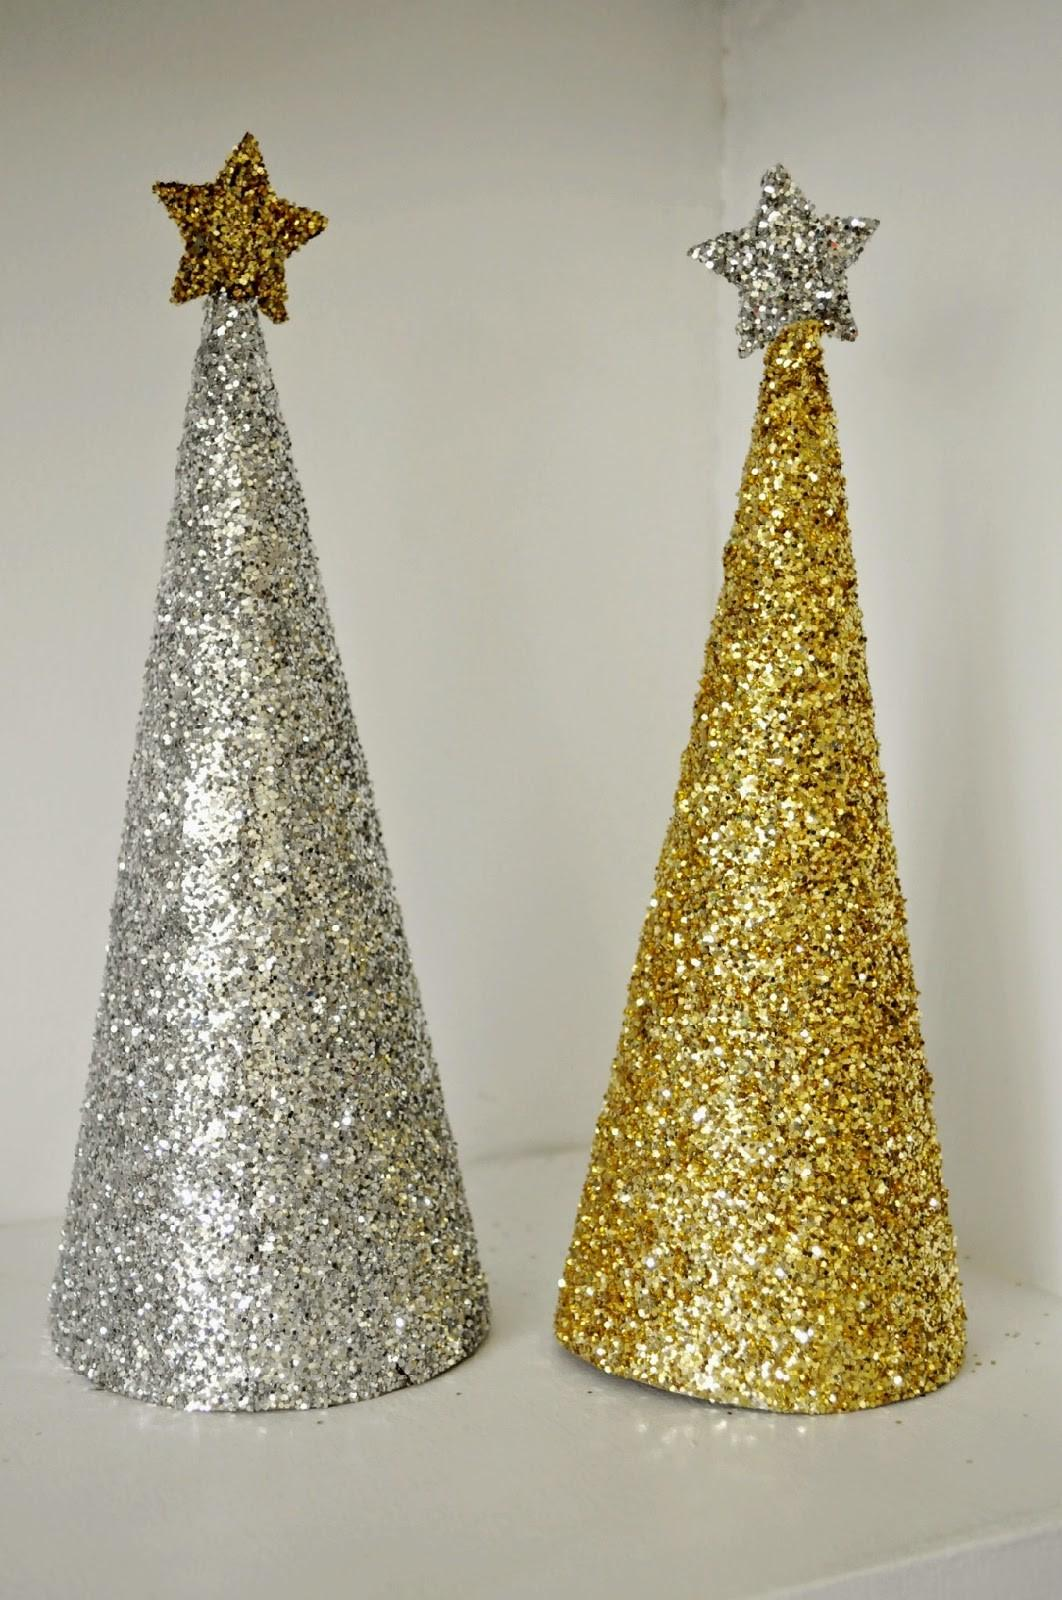 Awesome Cone Shaped Christmas Trees